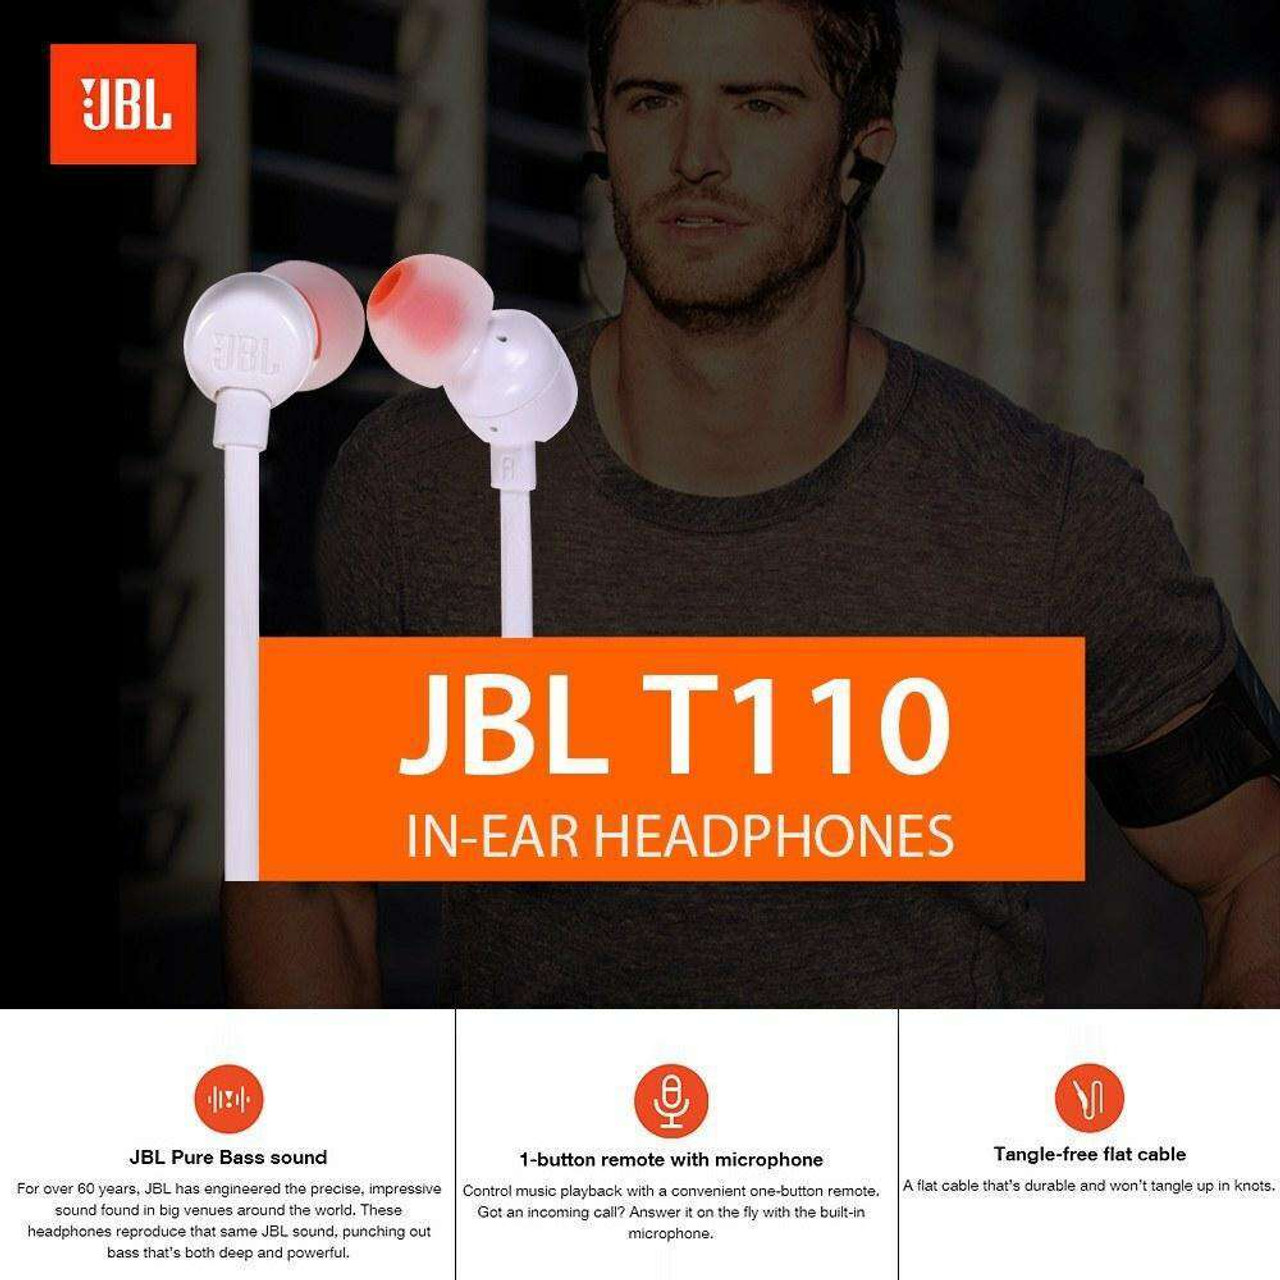 JBL T110 In Ear Headphones With Microphone Wired Control Headphones 3.5mm Jack